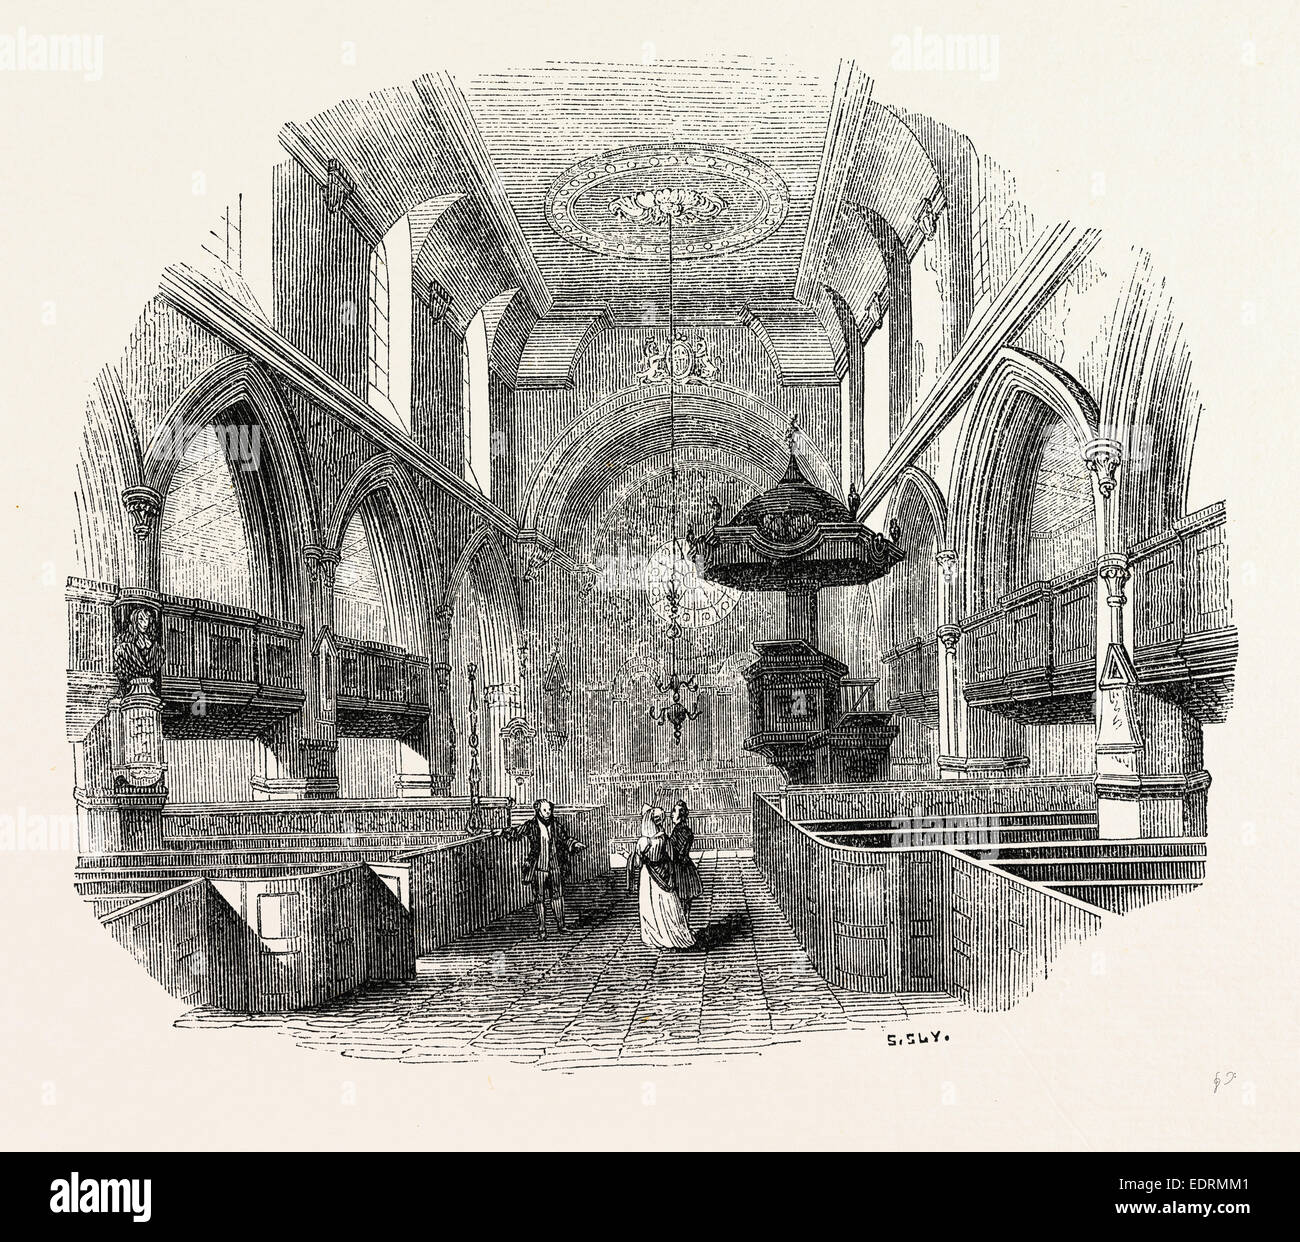 Chancel St. Giles, Cripplegate, London, England, engraving 19th century, Britain, UK - Stock Image